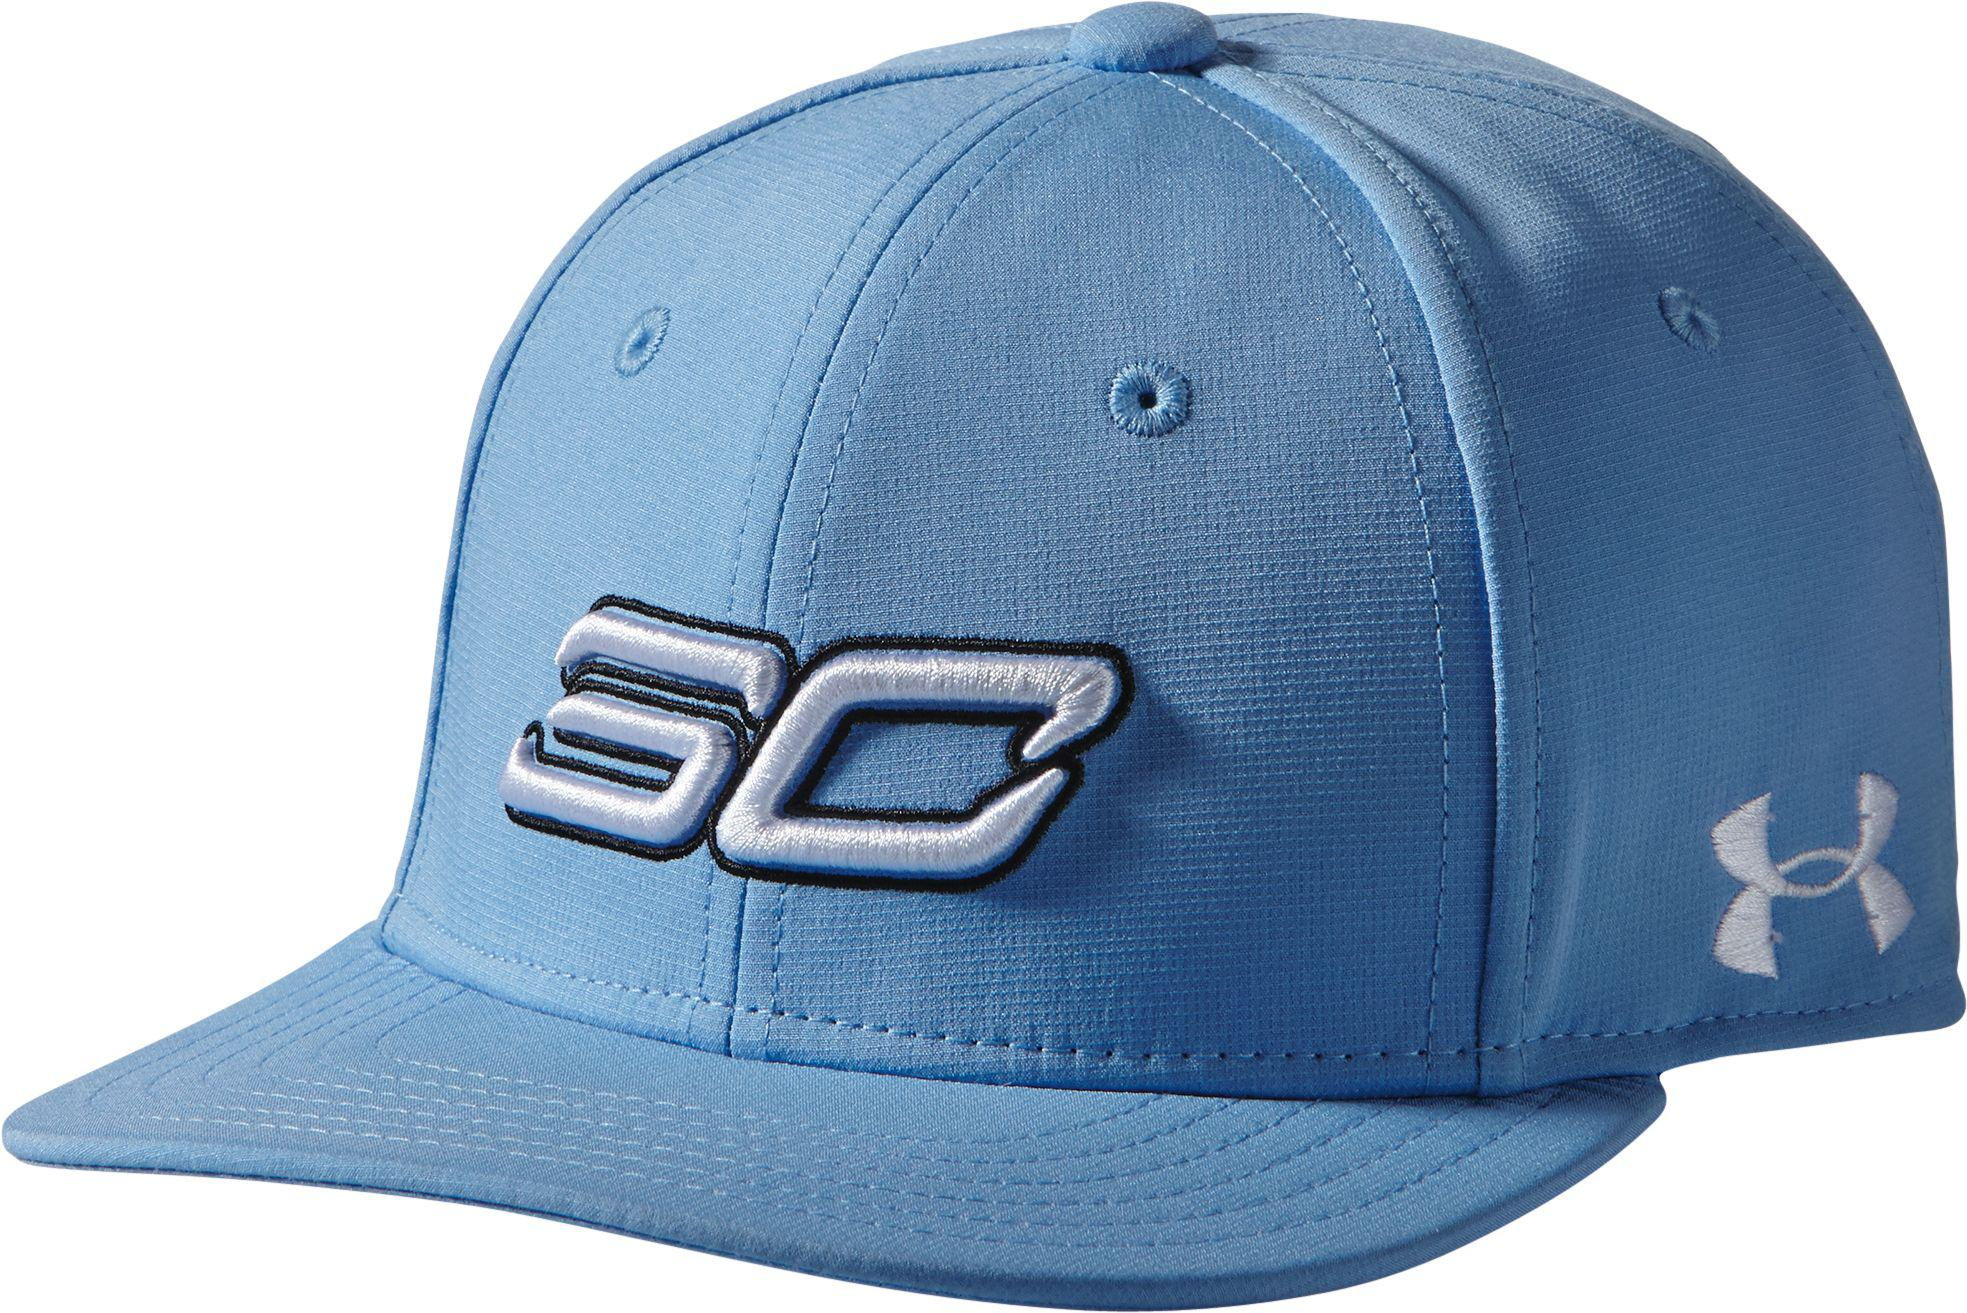 7c72ff4a8b3 Lyst - Under Armour Oys  Sc30 Core Snapback Hat in Blue for Men